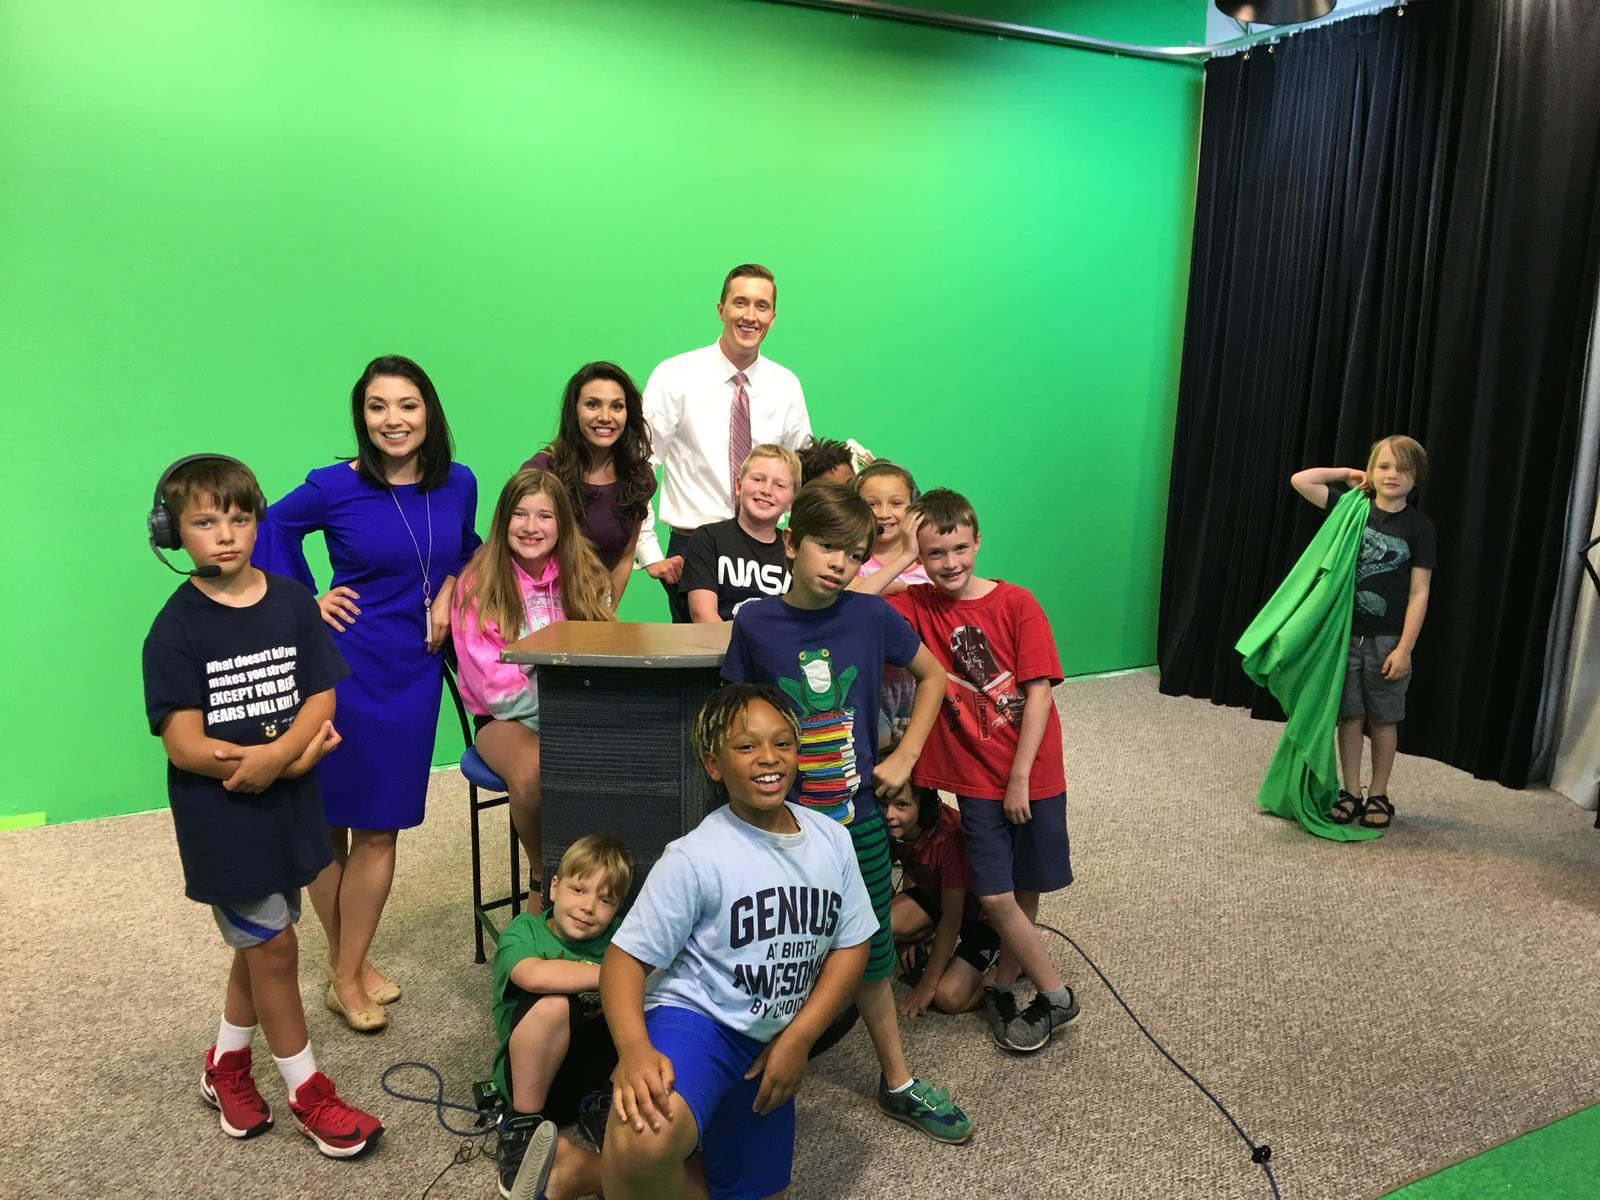 About a dozen students from{ }Public Media Network's summer youth program learned television journalism skills from Newschannel 3's{ }morning anchor/reporter Erica Mokay, weekend meteorologist/reporter Will Haenni, and evening anchor/reporter Lora Painter. (WWMT/Lora Painter)